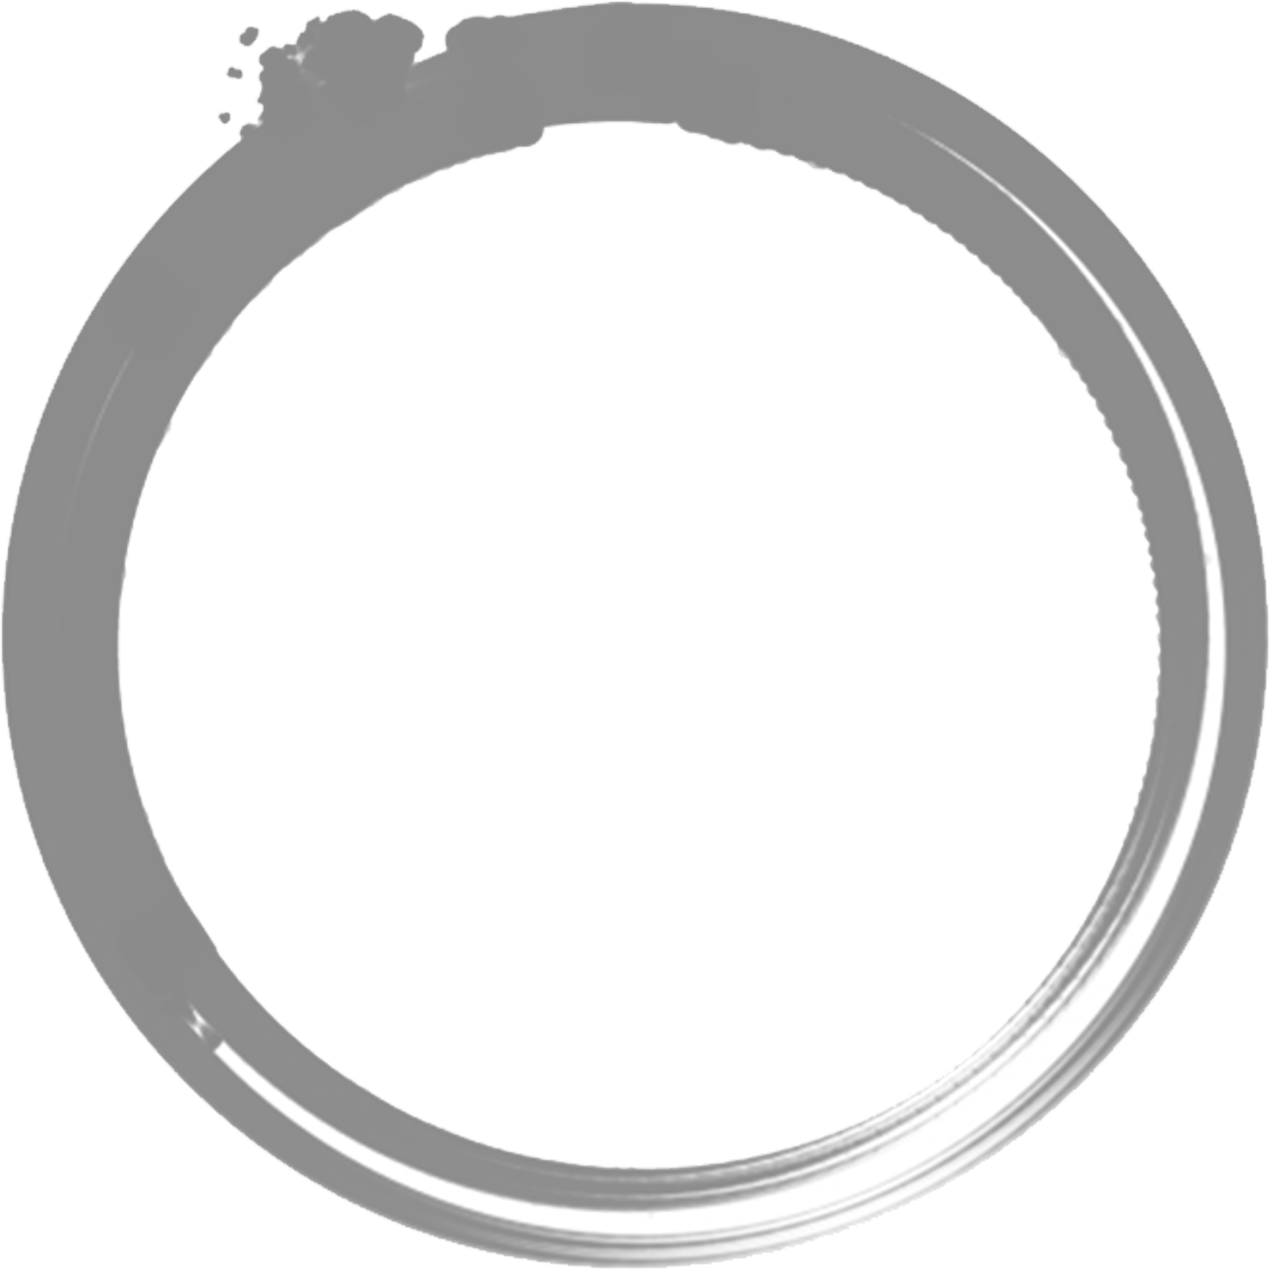 circle written by ink